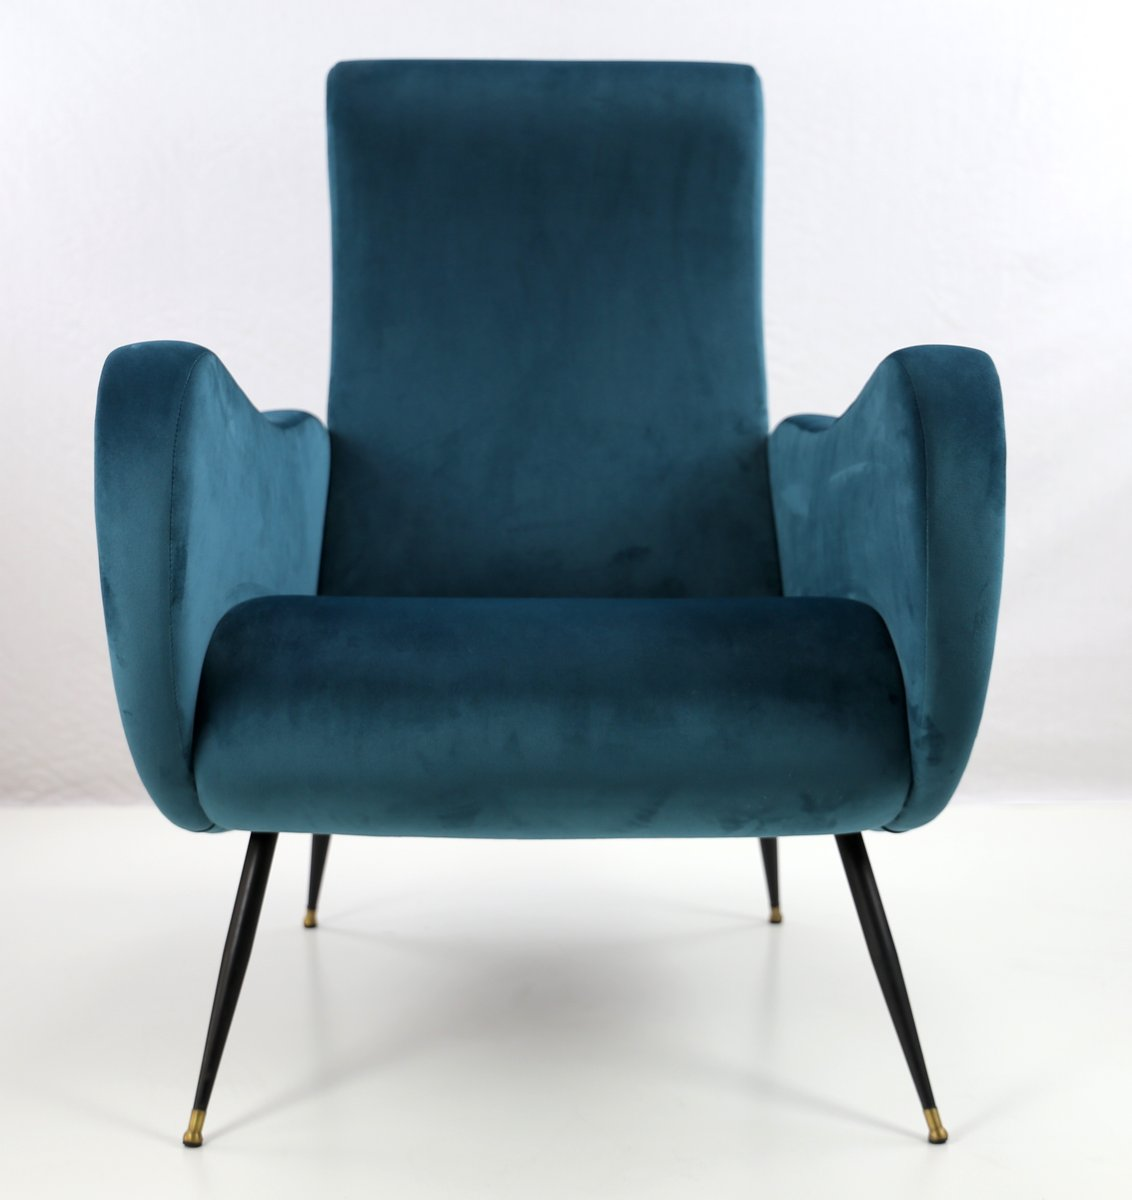 Vintage Italian Lounge Chair In Petrol Colored Velour, 1950s